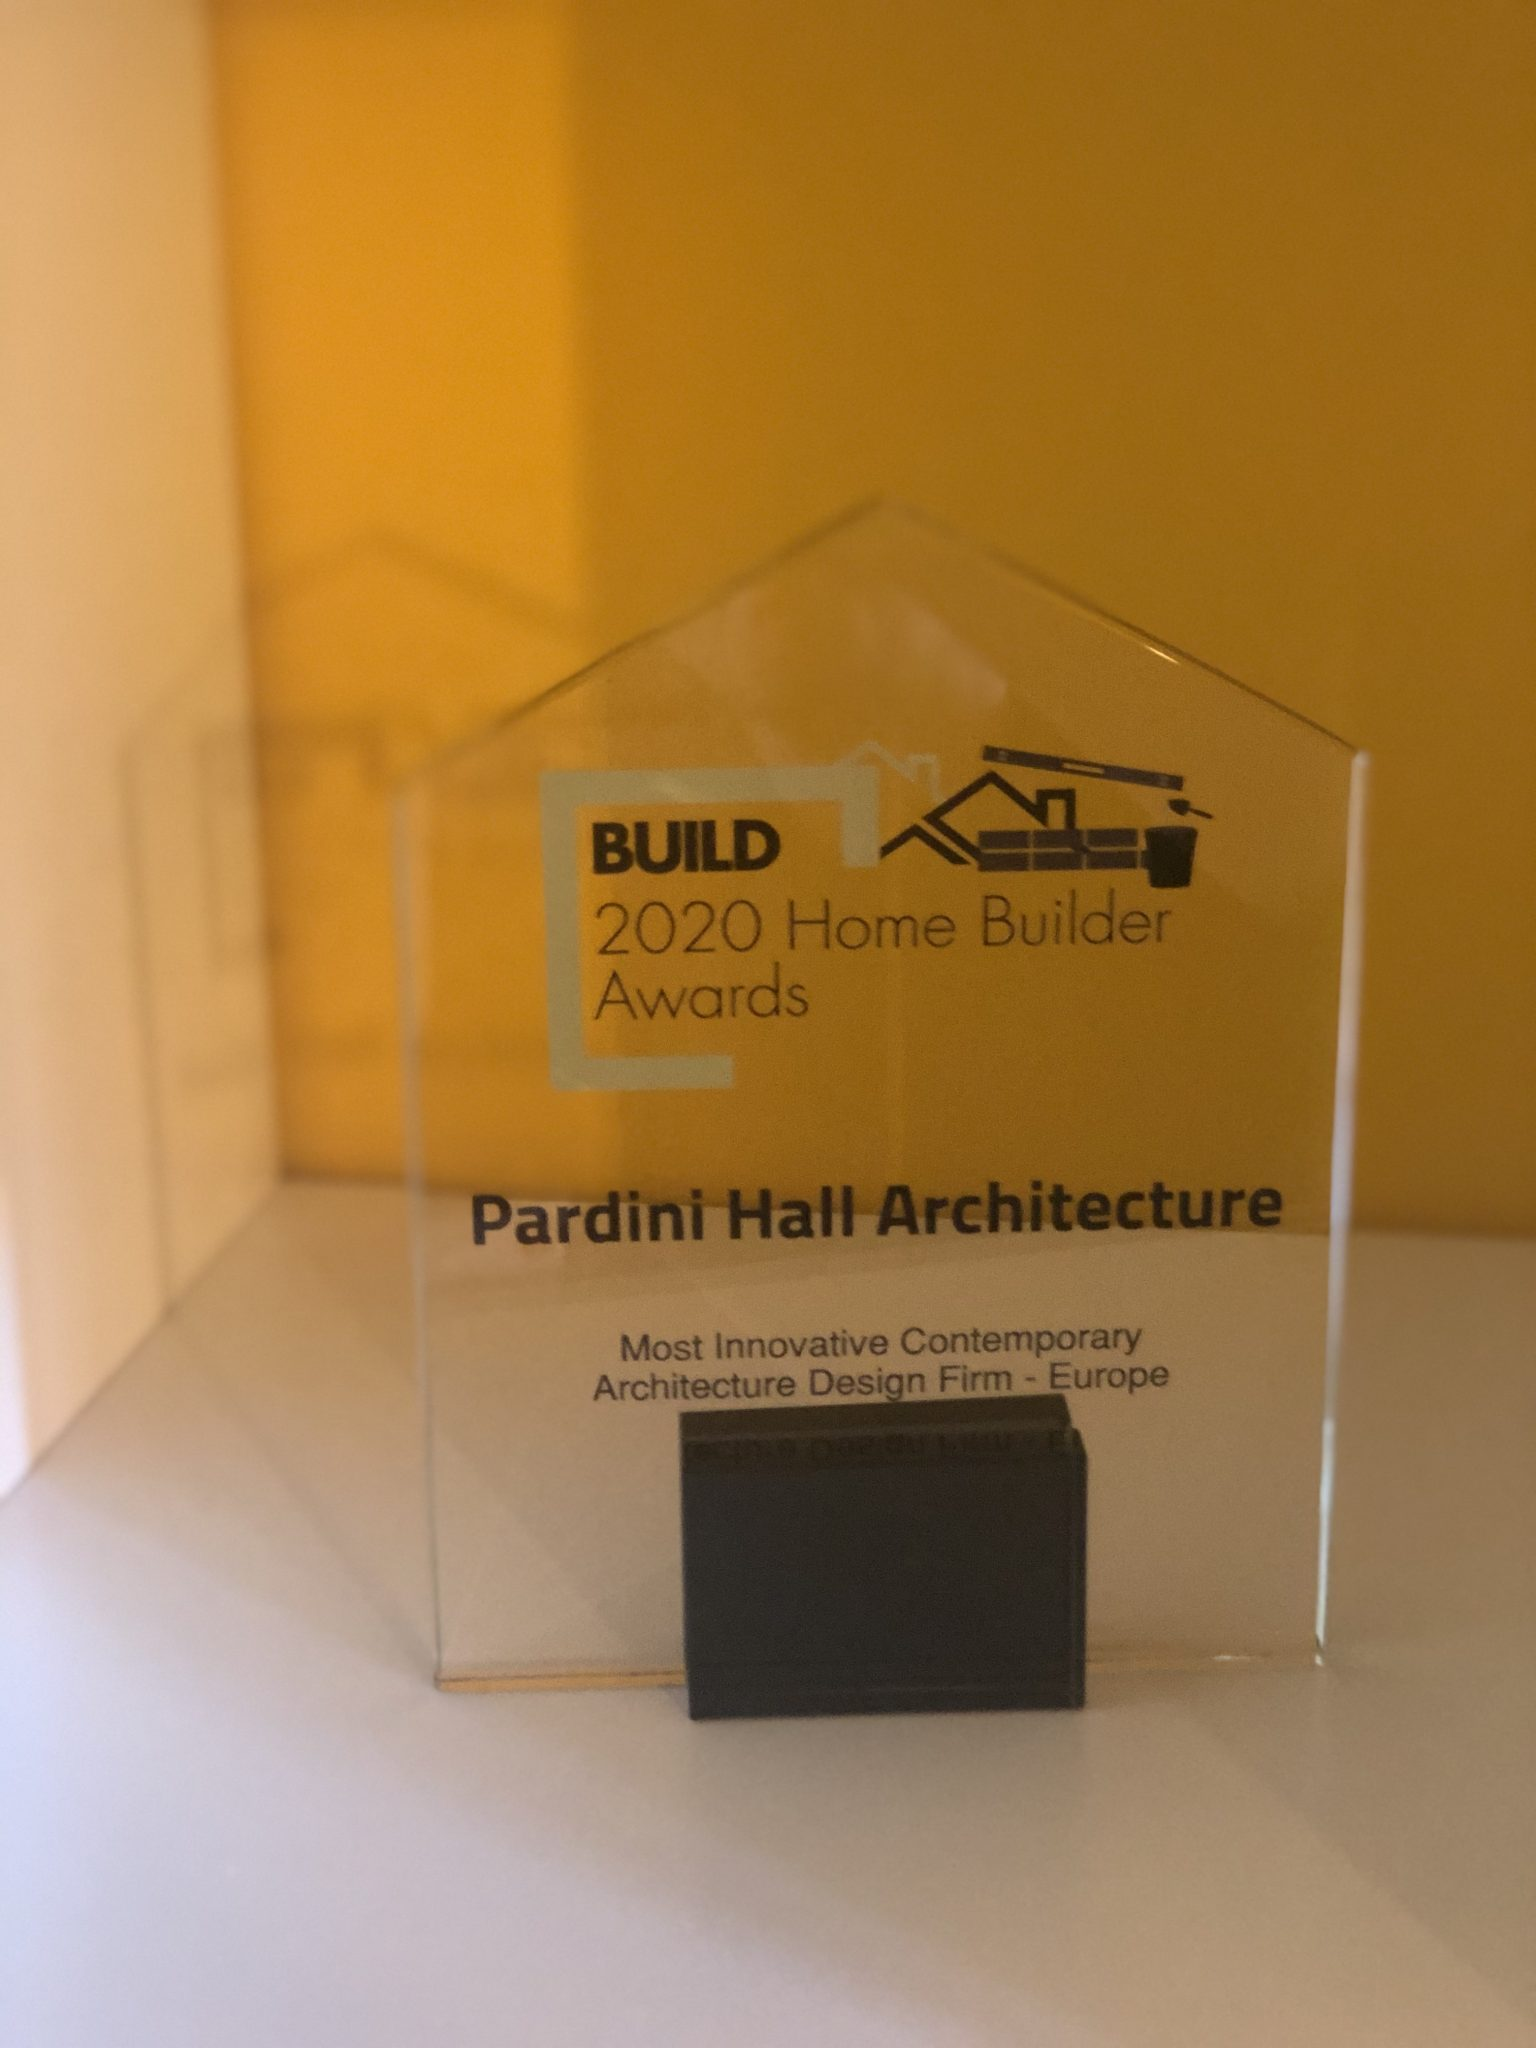 PHA wins the award from Build 2020